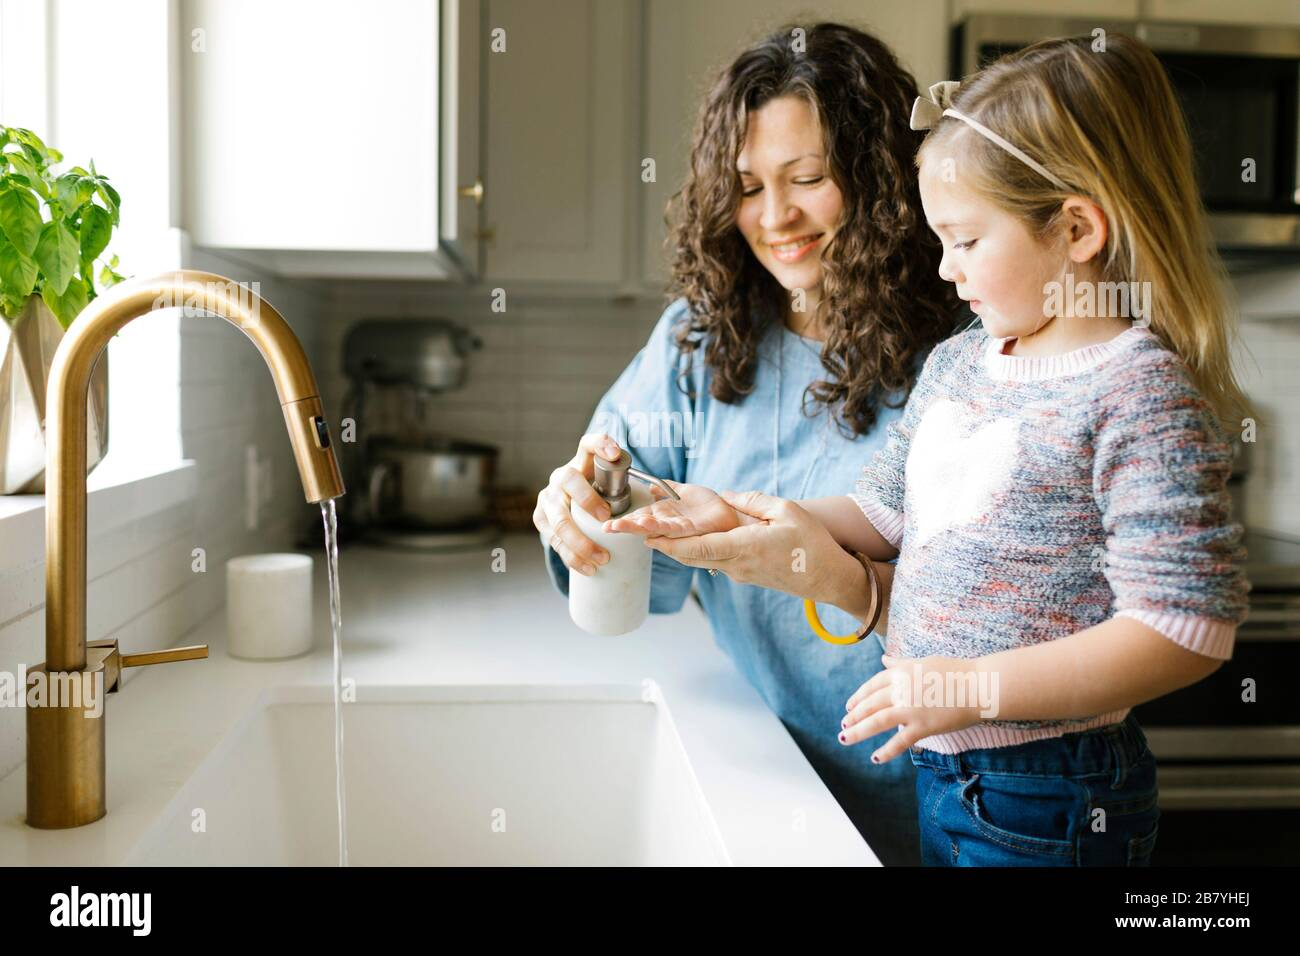 Mother and daughter washing hands in kitchen sink Stock Photo